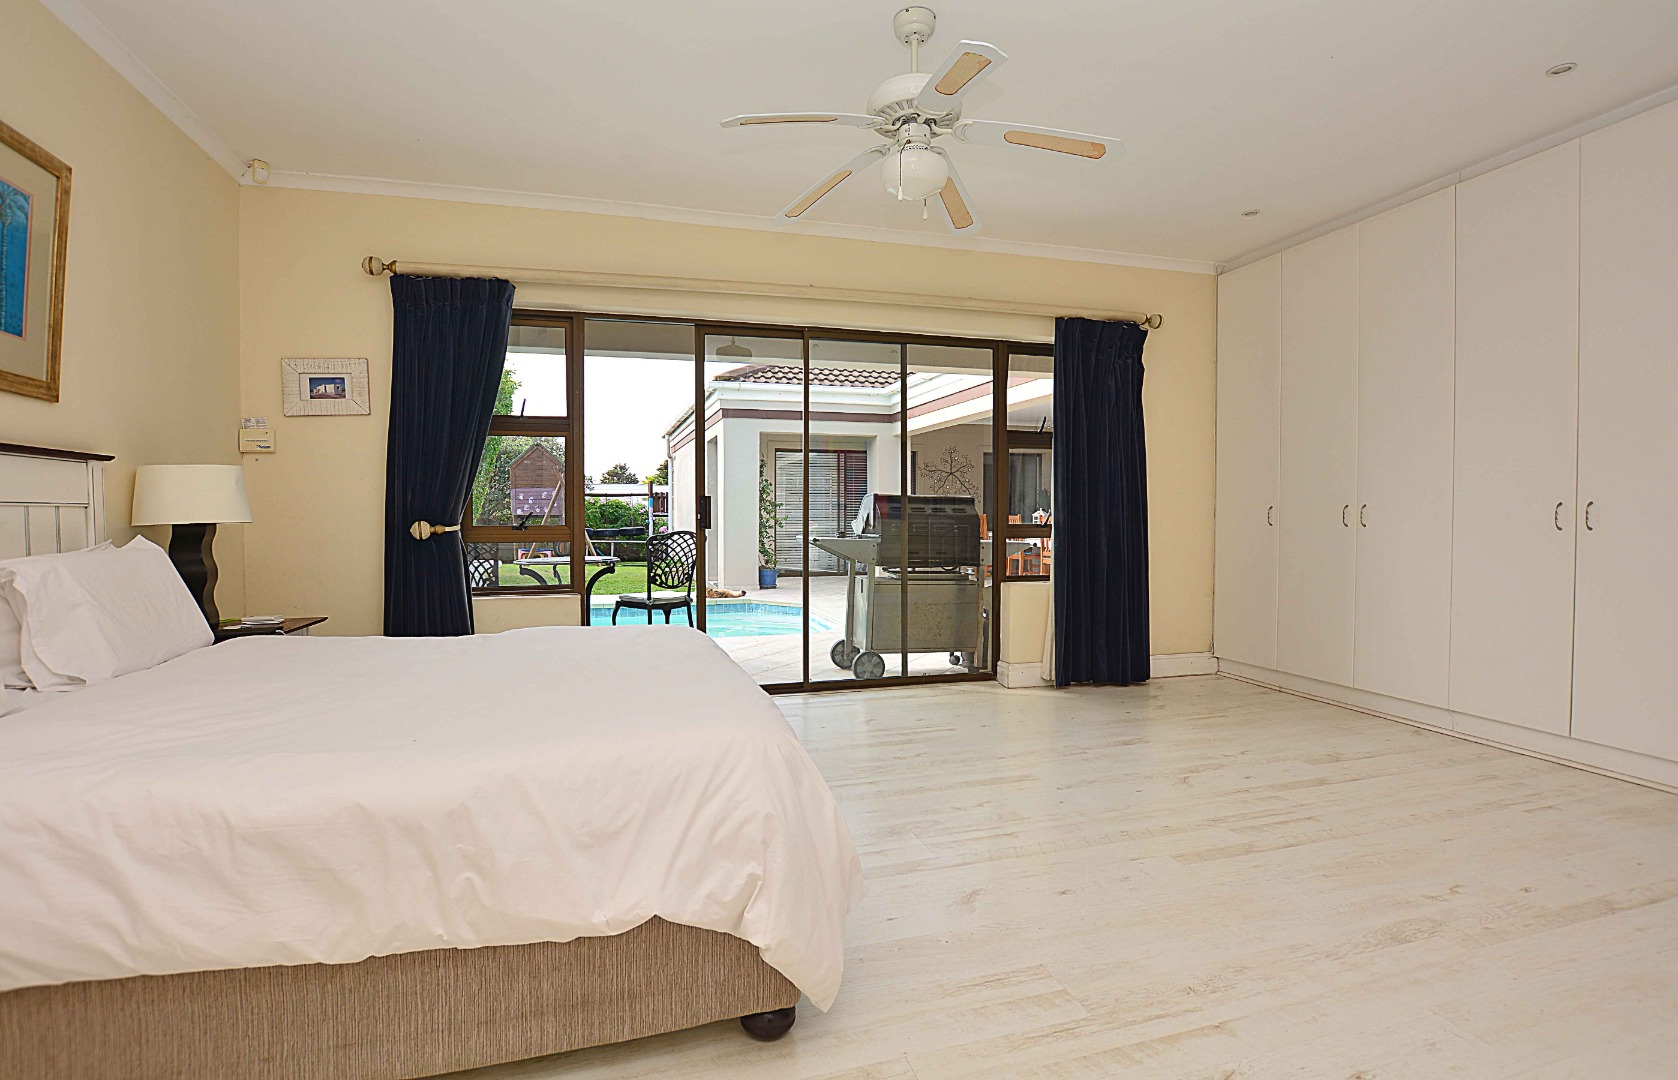 4 Bedroom House For Sale in West Beach